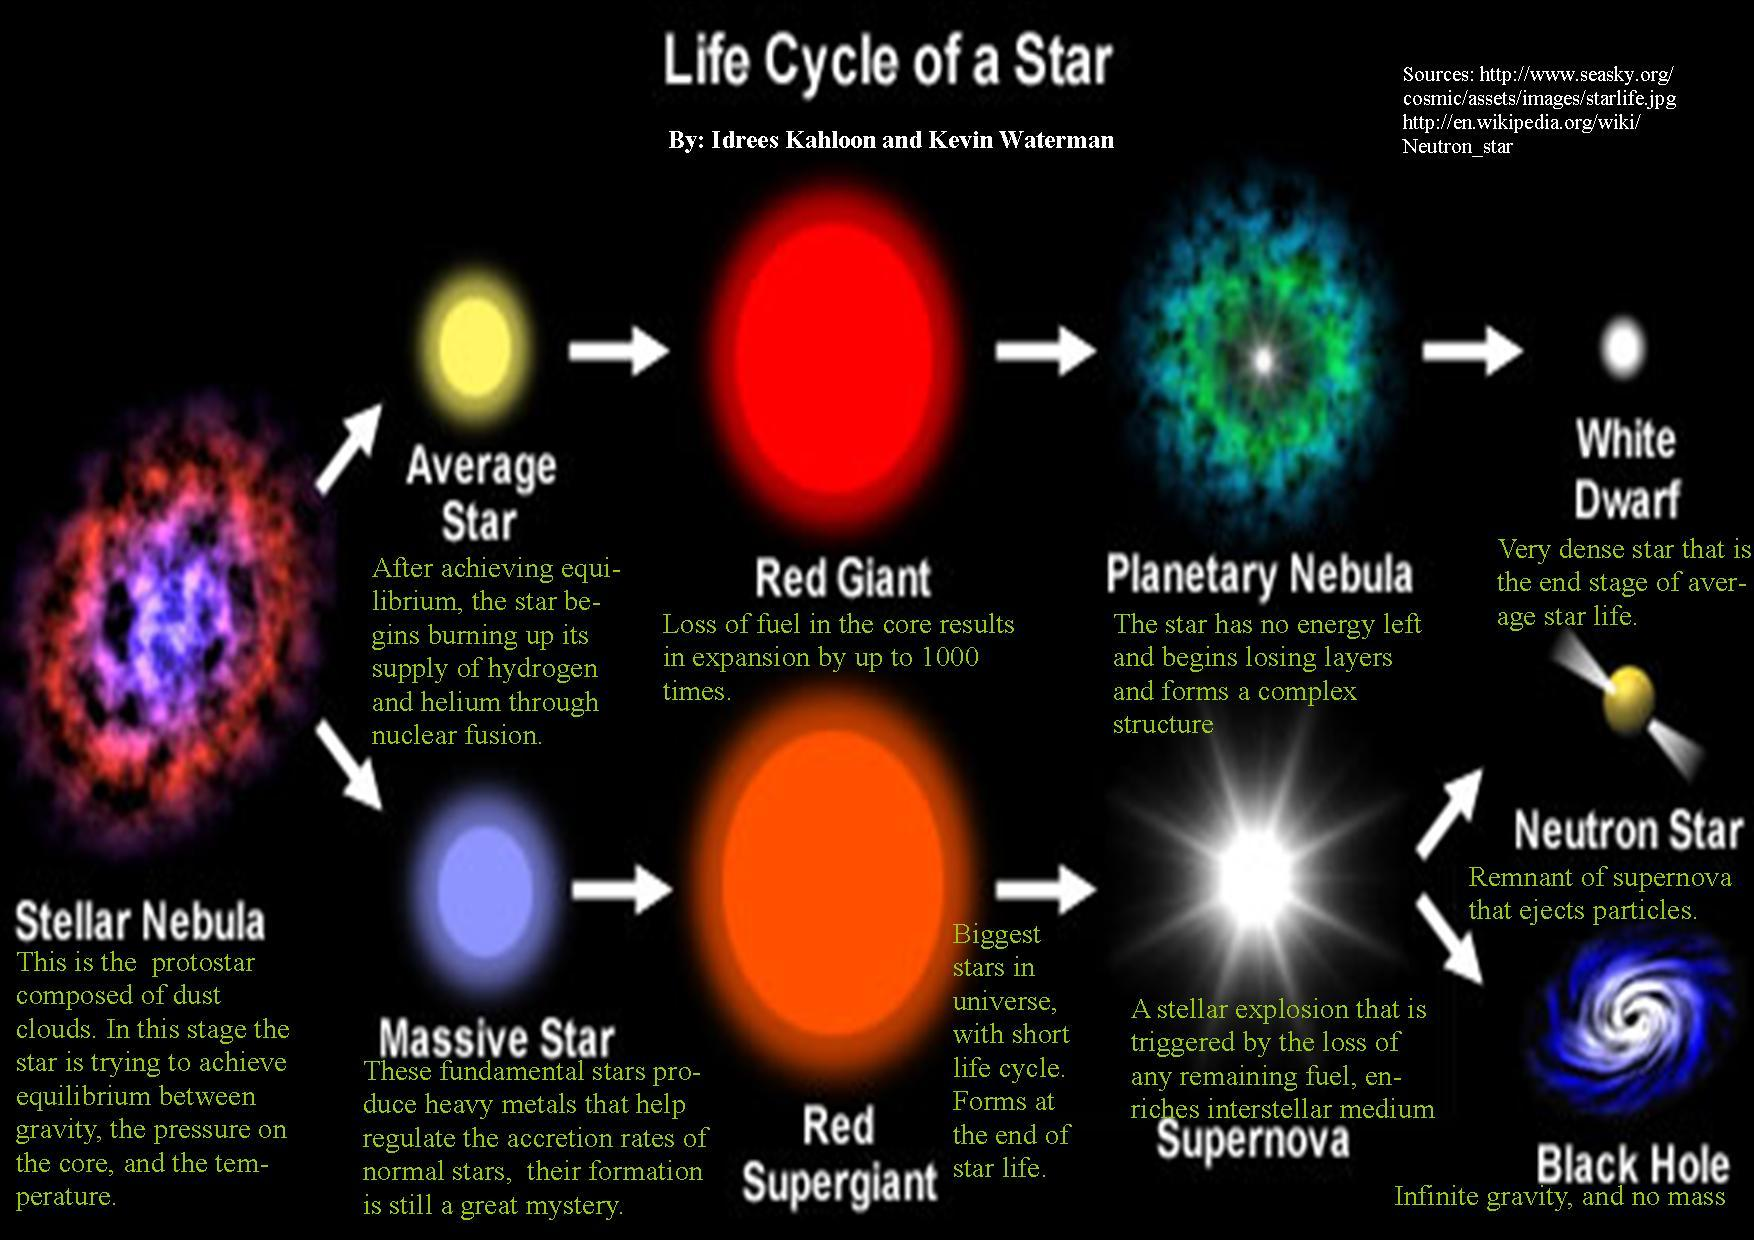 supernova a transformation of stars to black holes Theoretically, what would happen if a dark star in a black hole went supernova does the force cause the black hole to unfold.